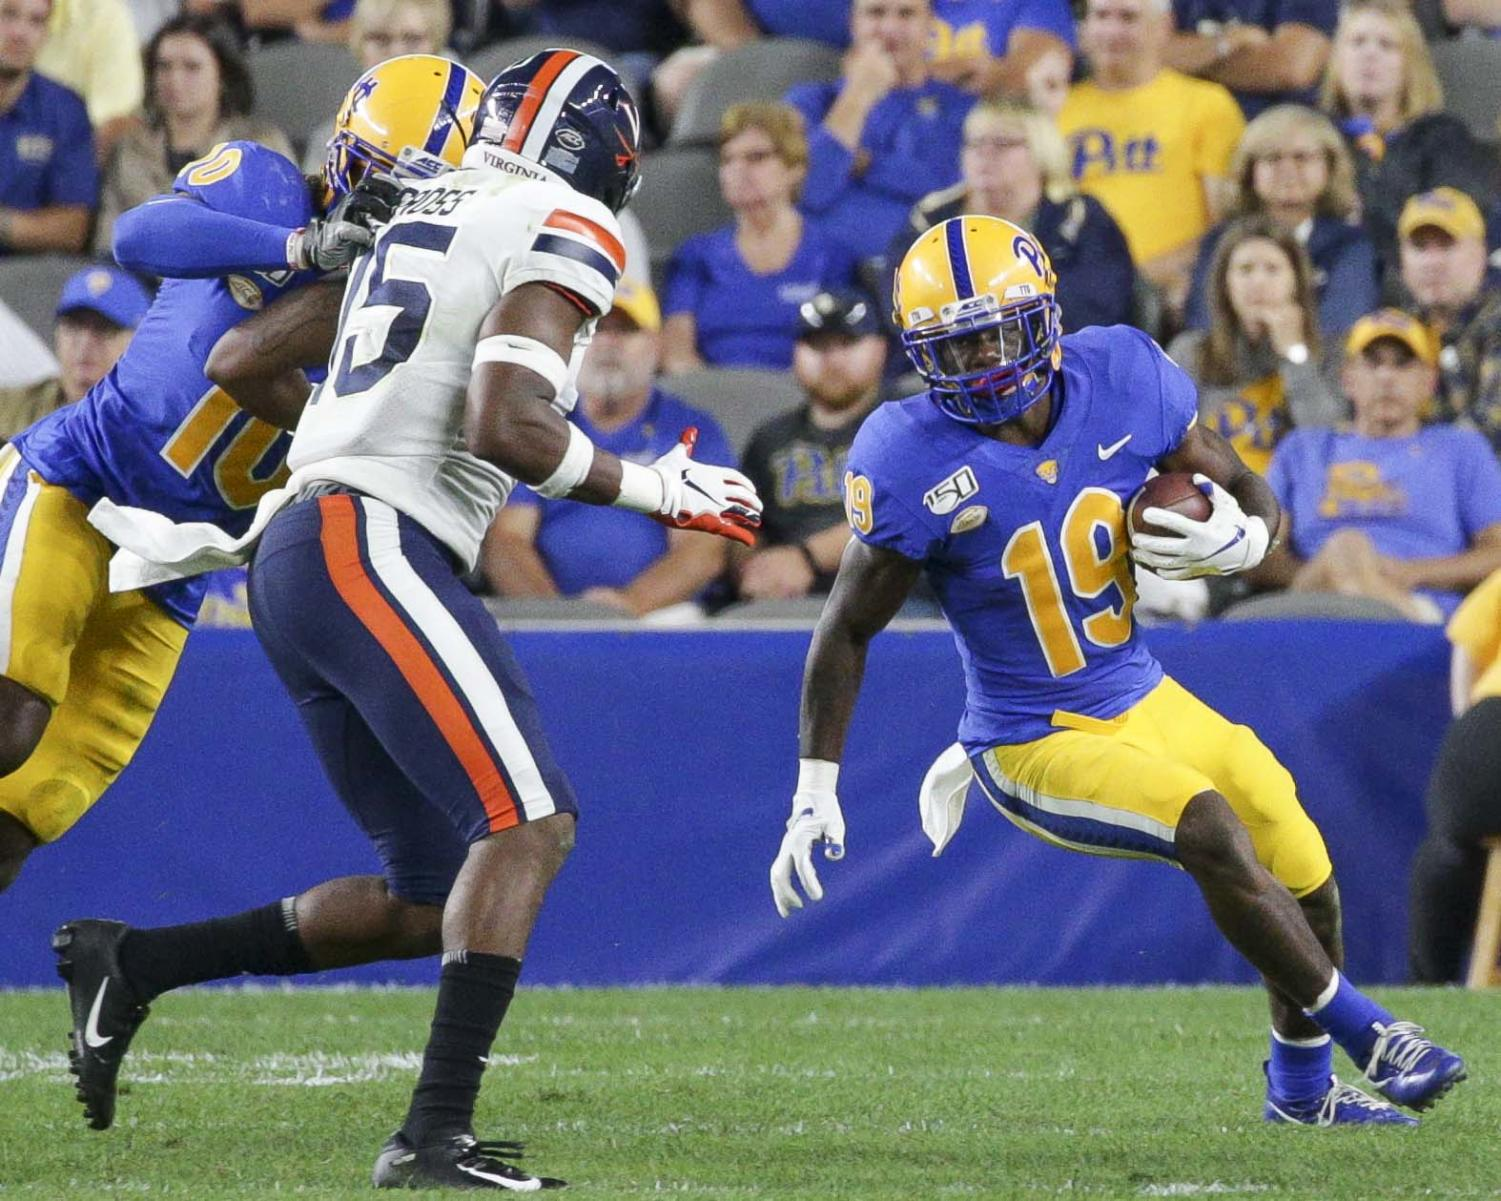 Sophomore wide receiver V'Lique Carter (19) pushes for yardage against Virgina at the season opener on Aug. 31.